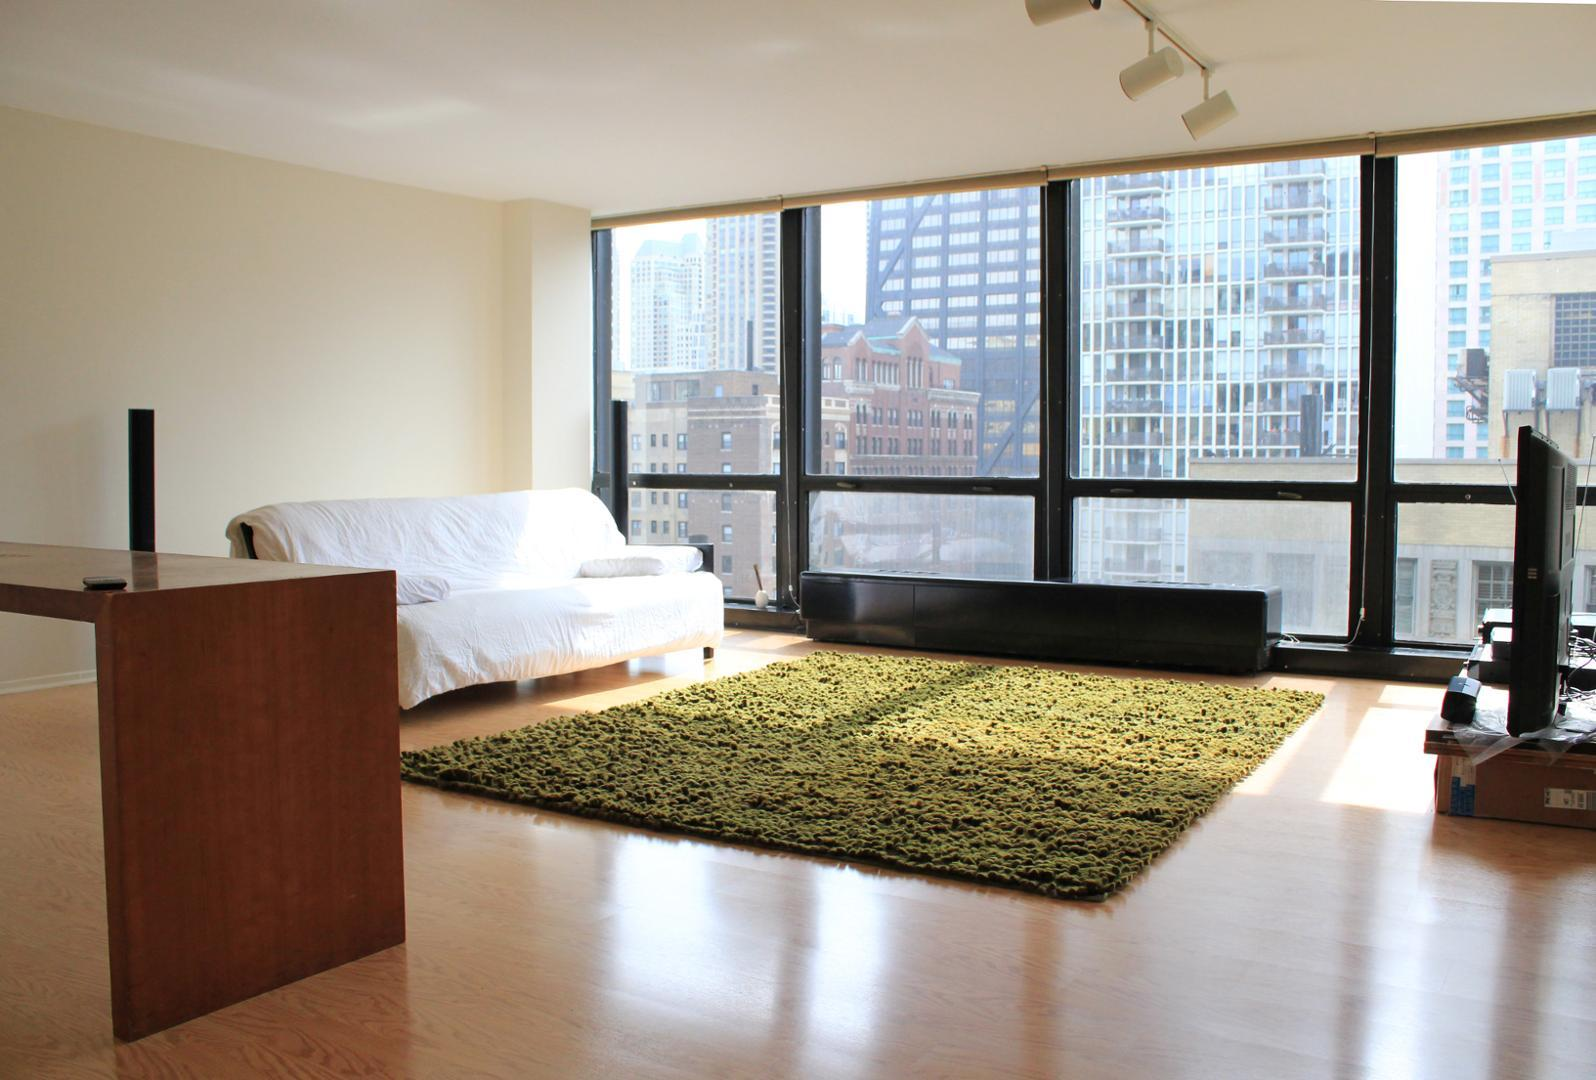 910 N Lake Shore Dr #1718, Chicago, IL - $2,400 USD/ month